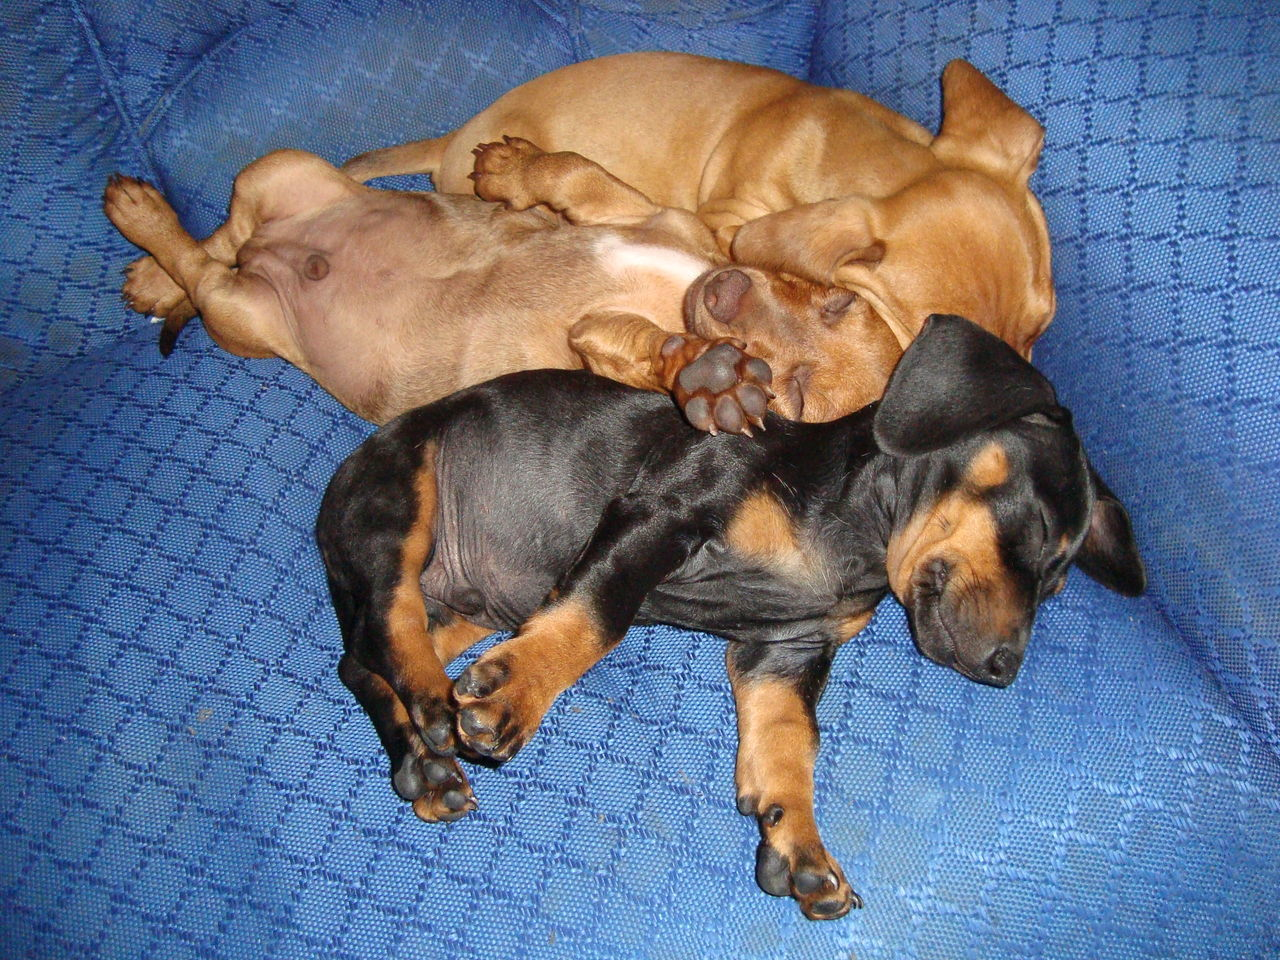 dog, pets, domestic animals, puppy, indoors, blue, mammal, animal themes, togetherness, no people, day